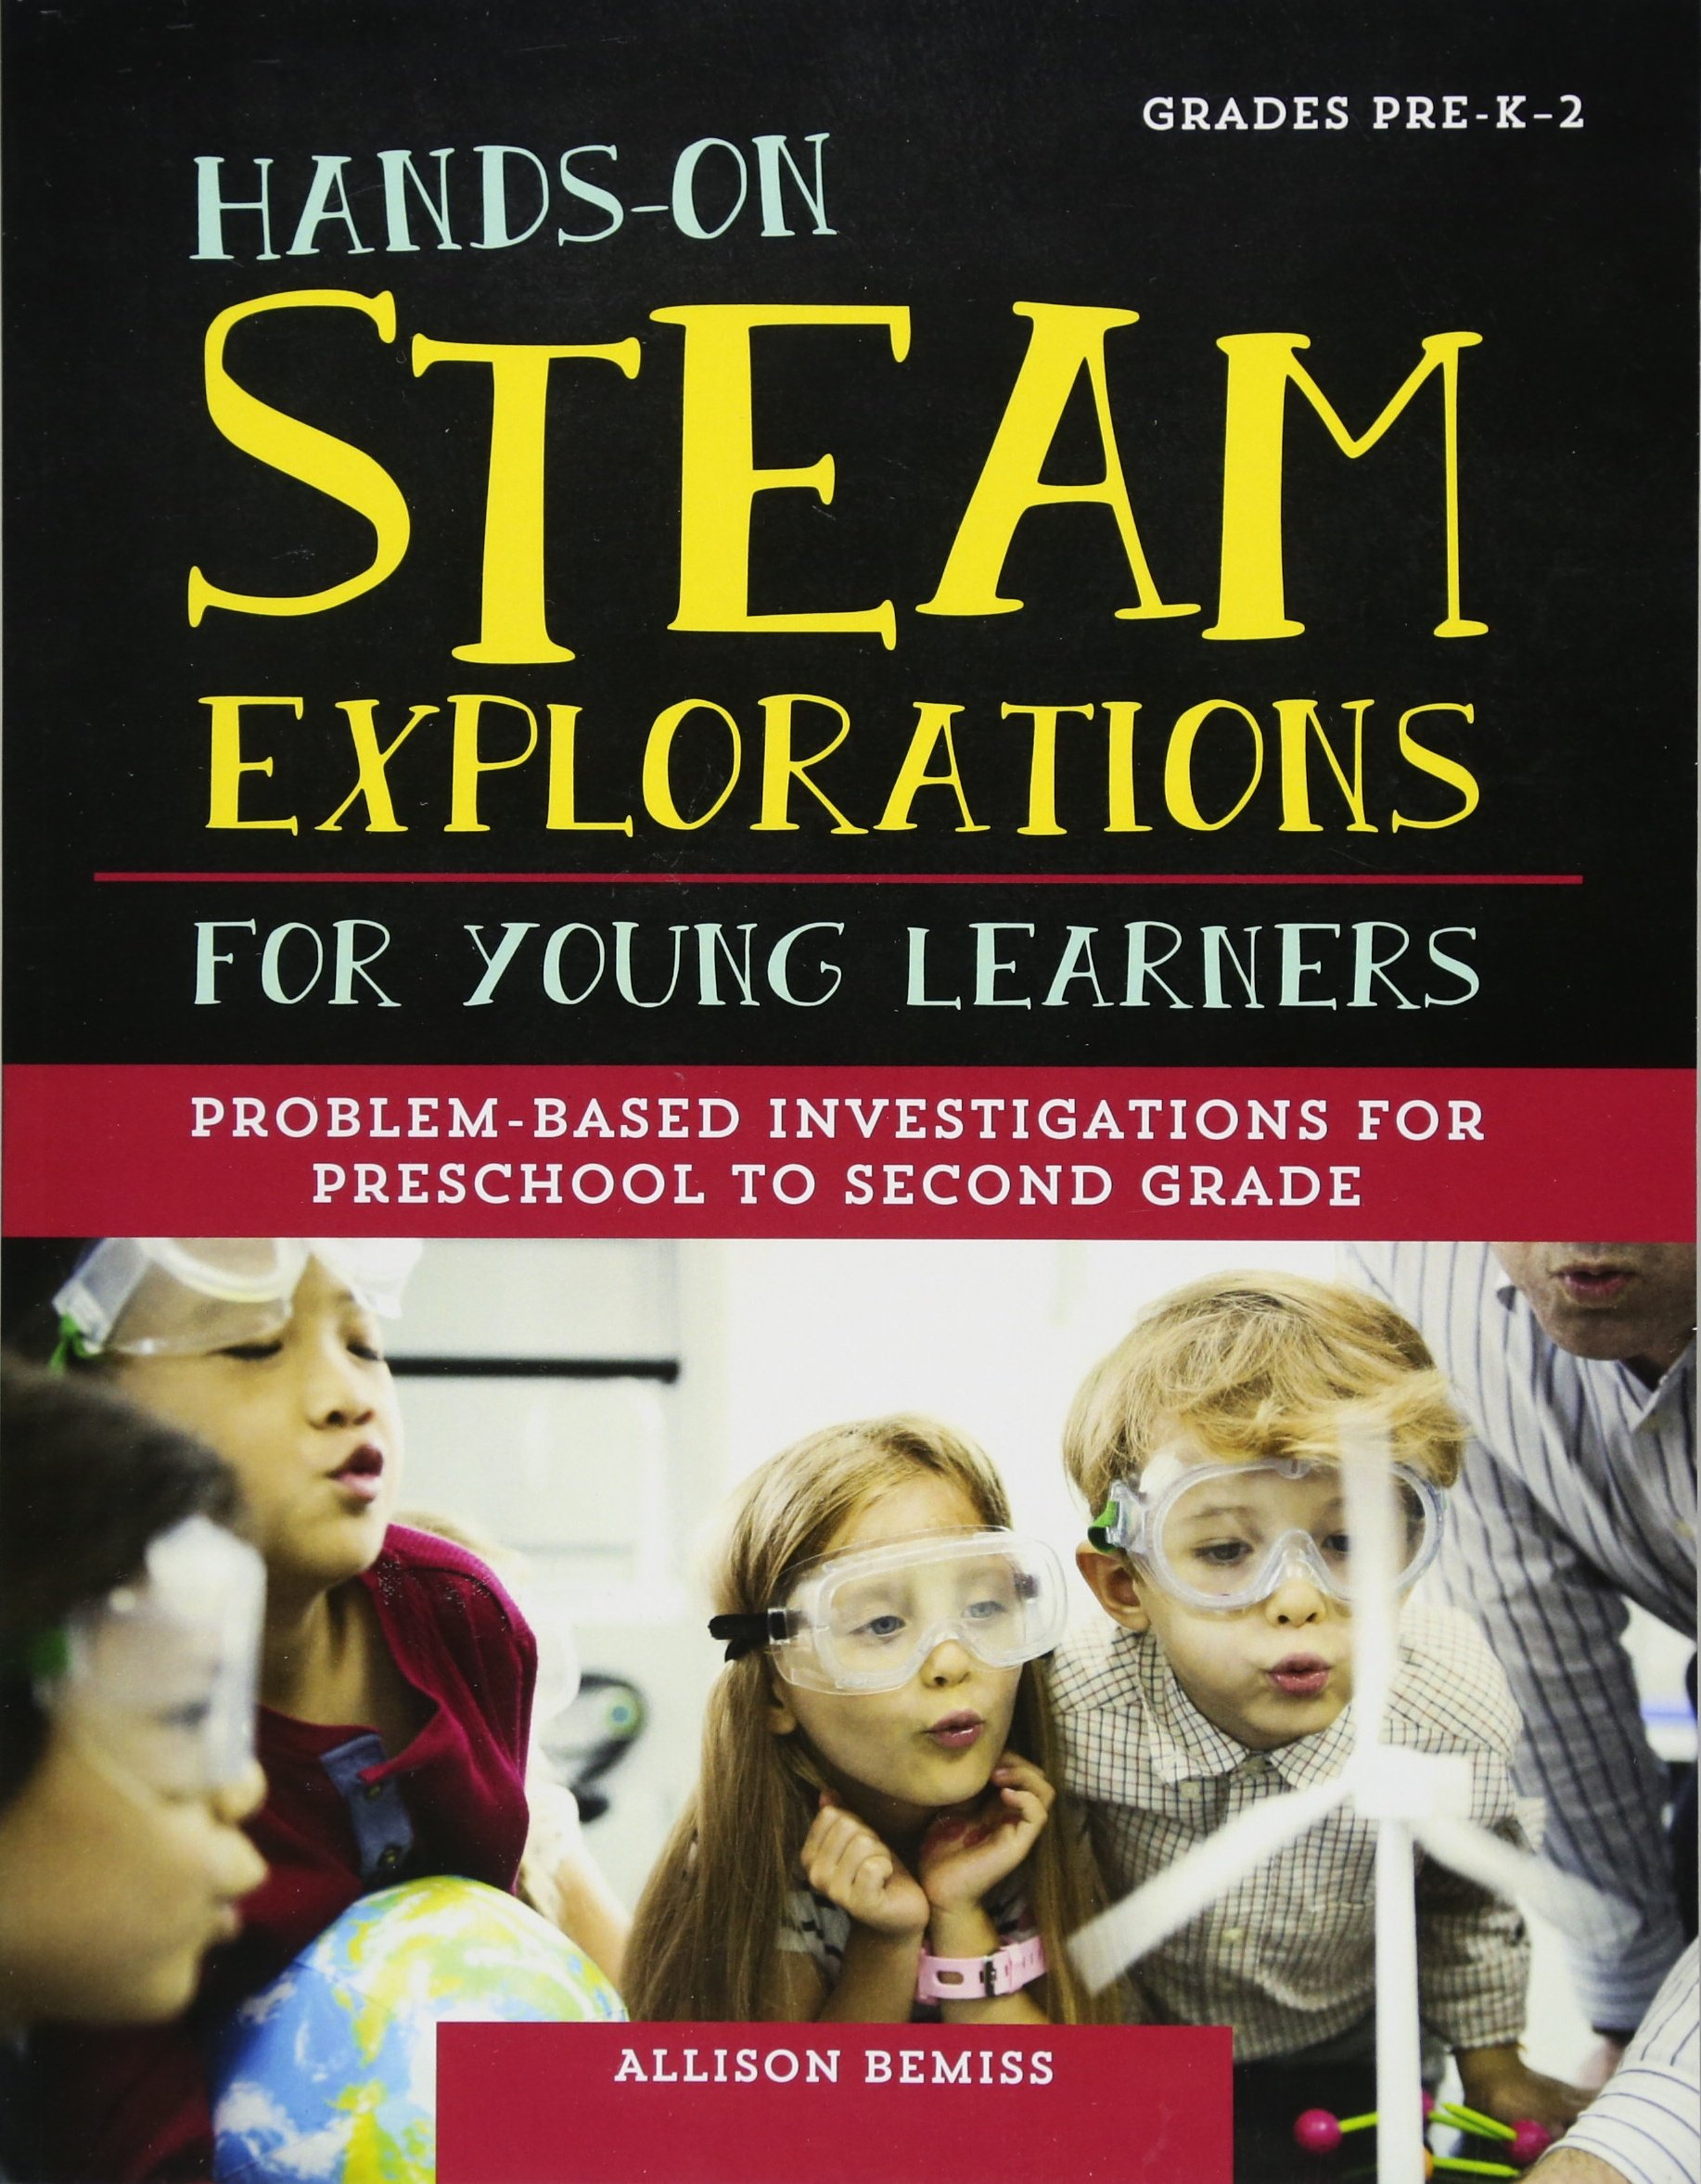 Hands-On STEAM Explorations for Young Learners: Problem-Based Investigations for Preschool to Second Grade pdf